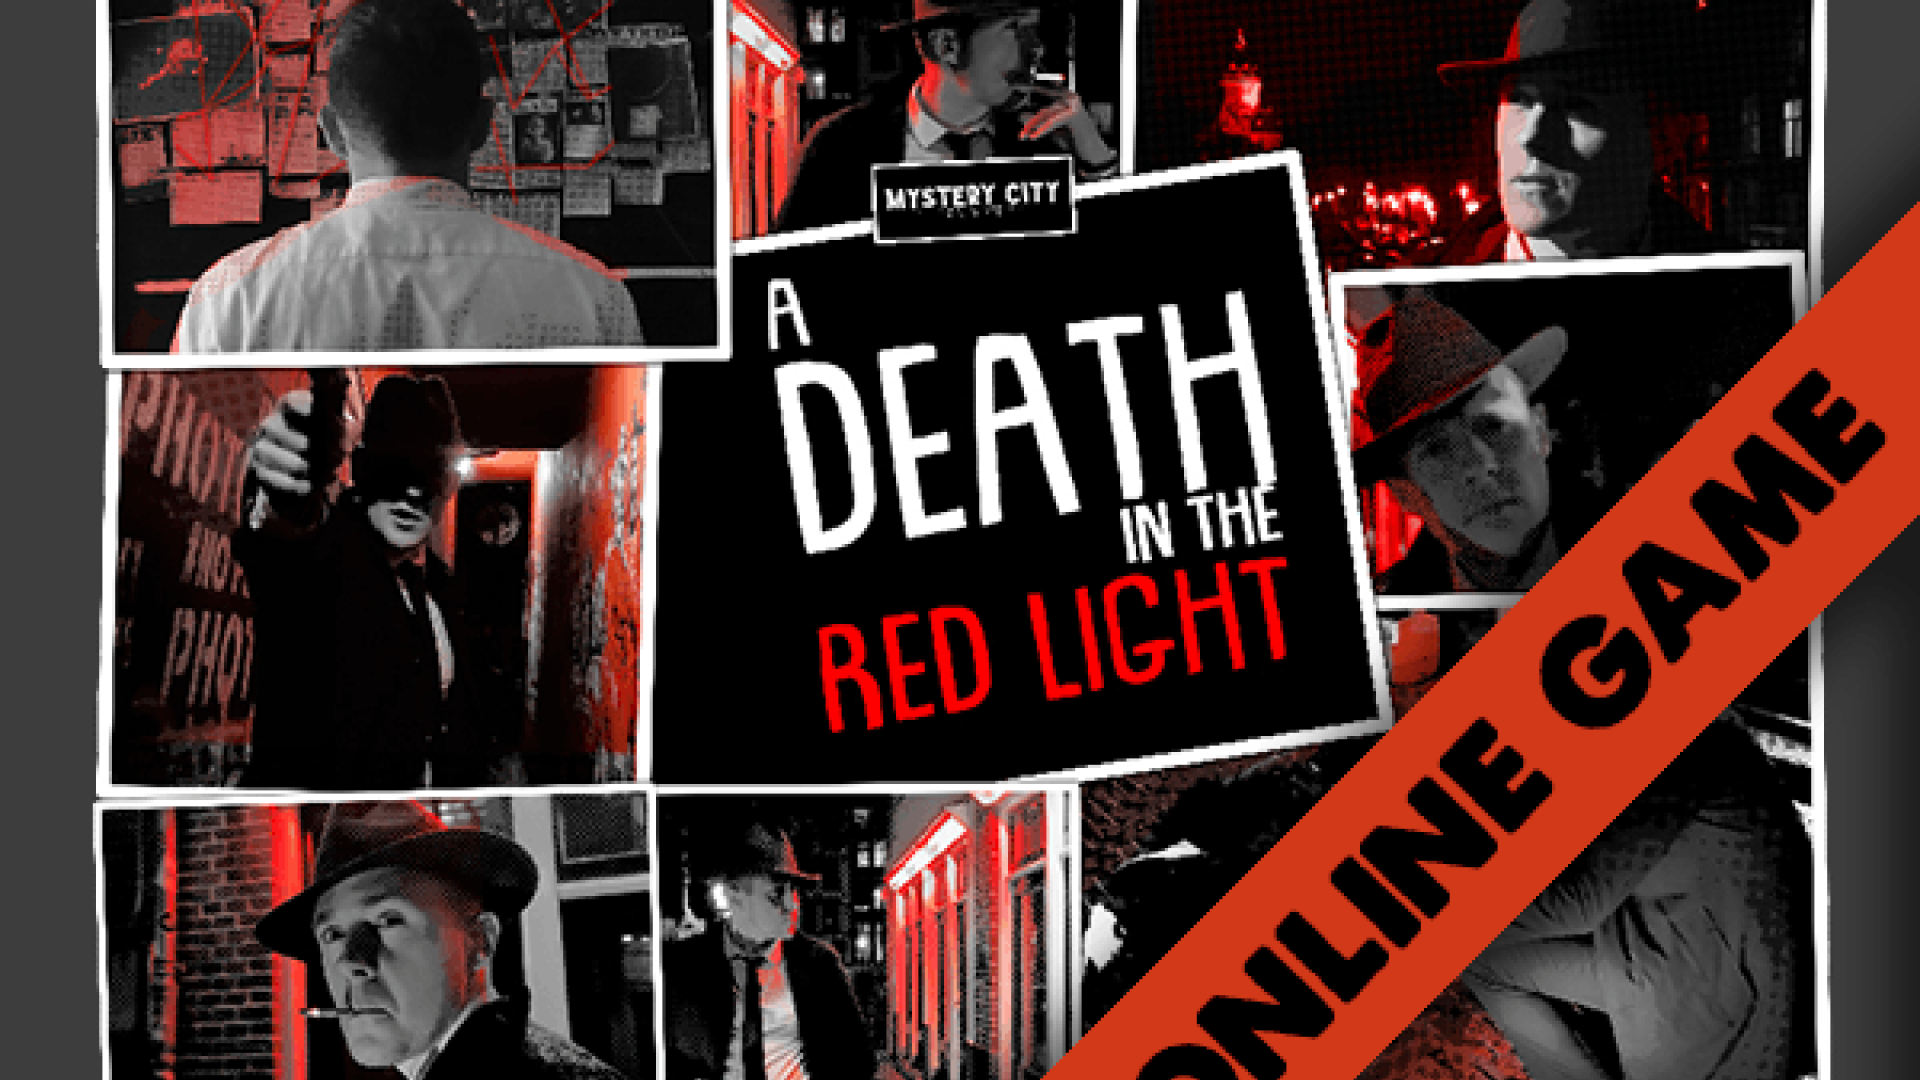 A Death in the Red Light 1 Hour